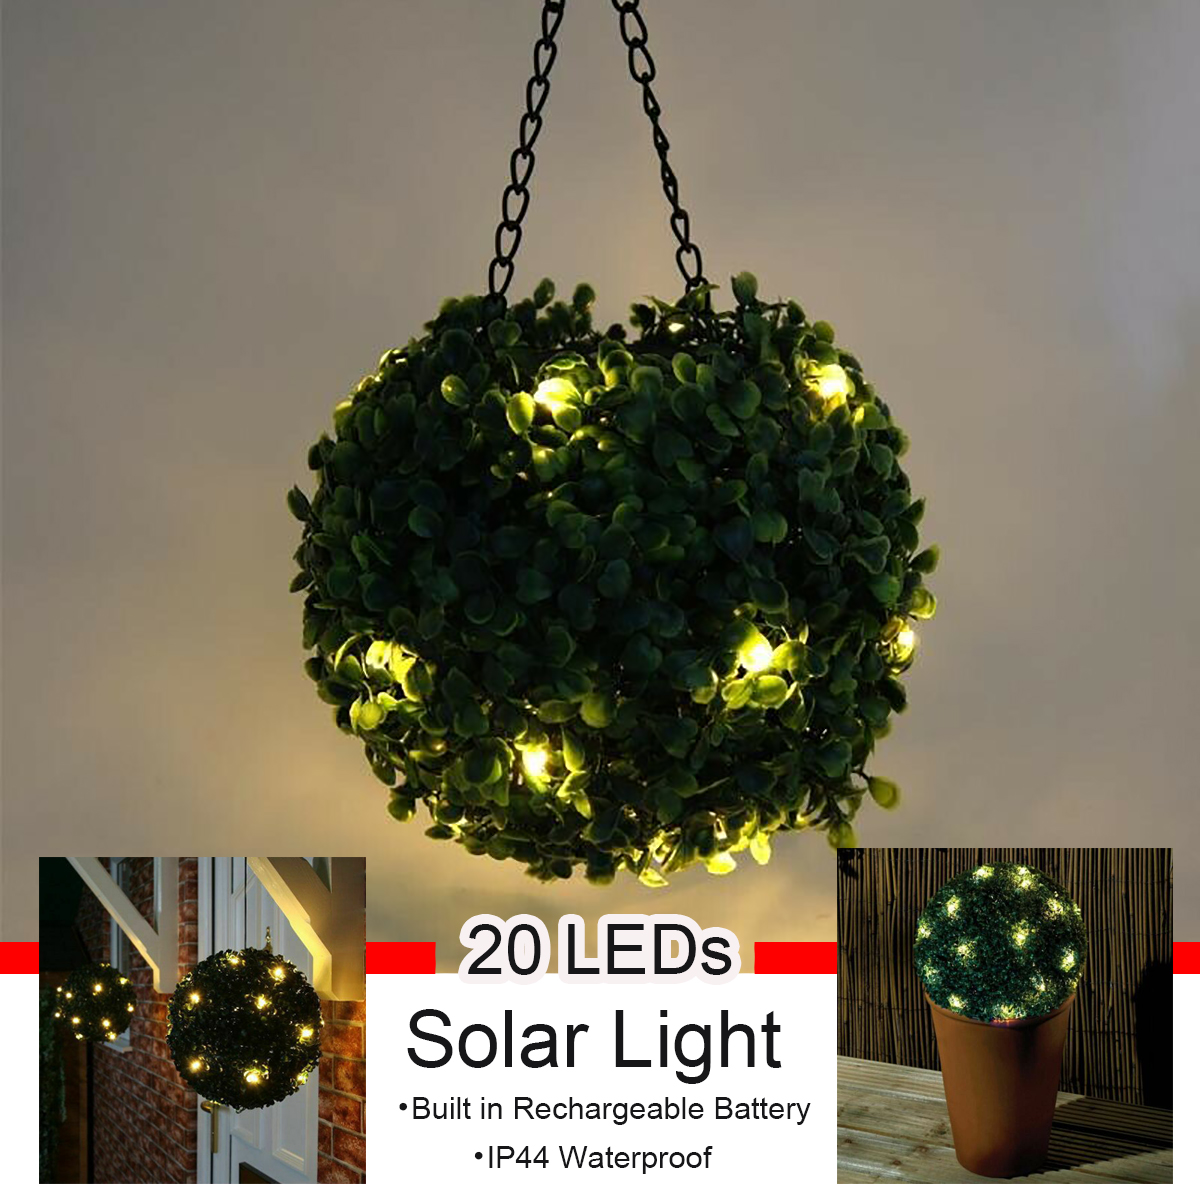 8inch Solar Led Topiary Ball Light Waterproof Solar Powered Led Light Artificial Topiary Plant Ball Outdoor Garden Warm White Lamp Wedding Party Home Decoration Walmart Canada